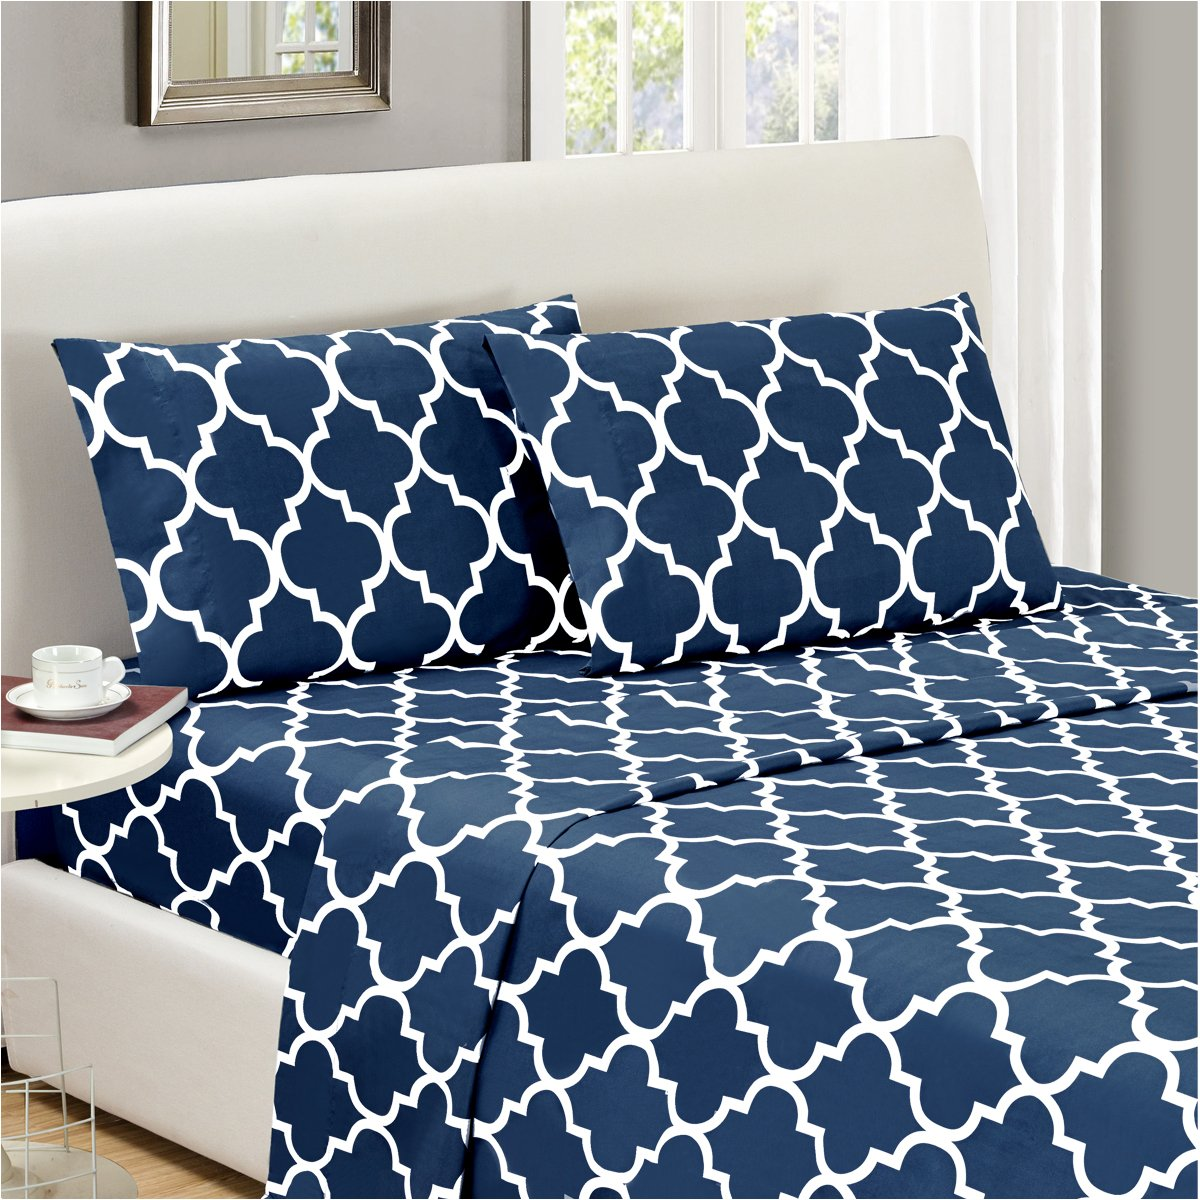 Mellanni Bed Sheet Set CalKing-Navy-Blue - HIGHEST QUALITY Brushed Microfiber Printed Bedding